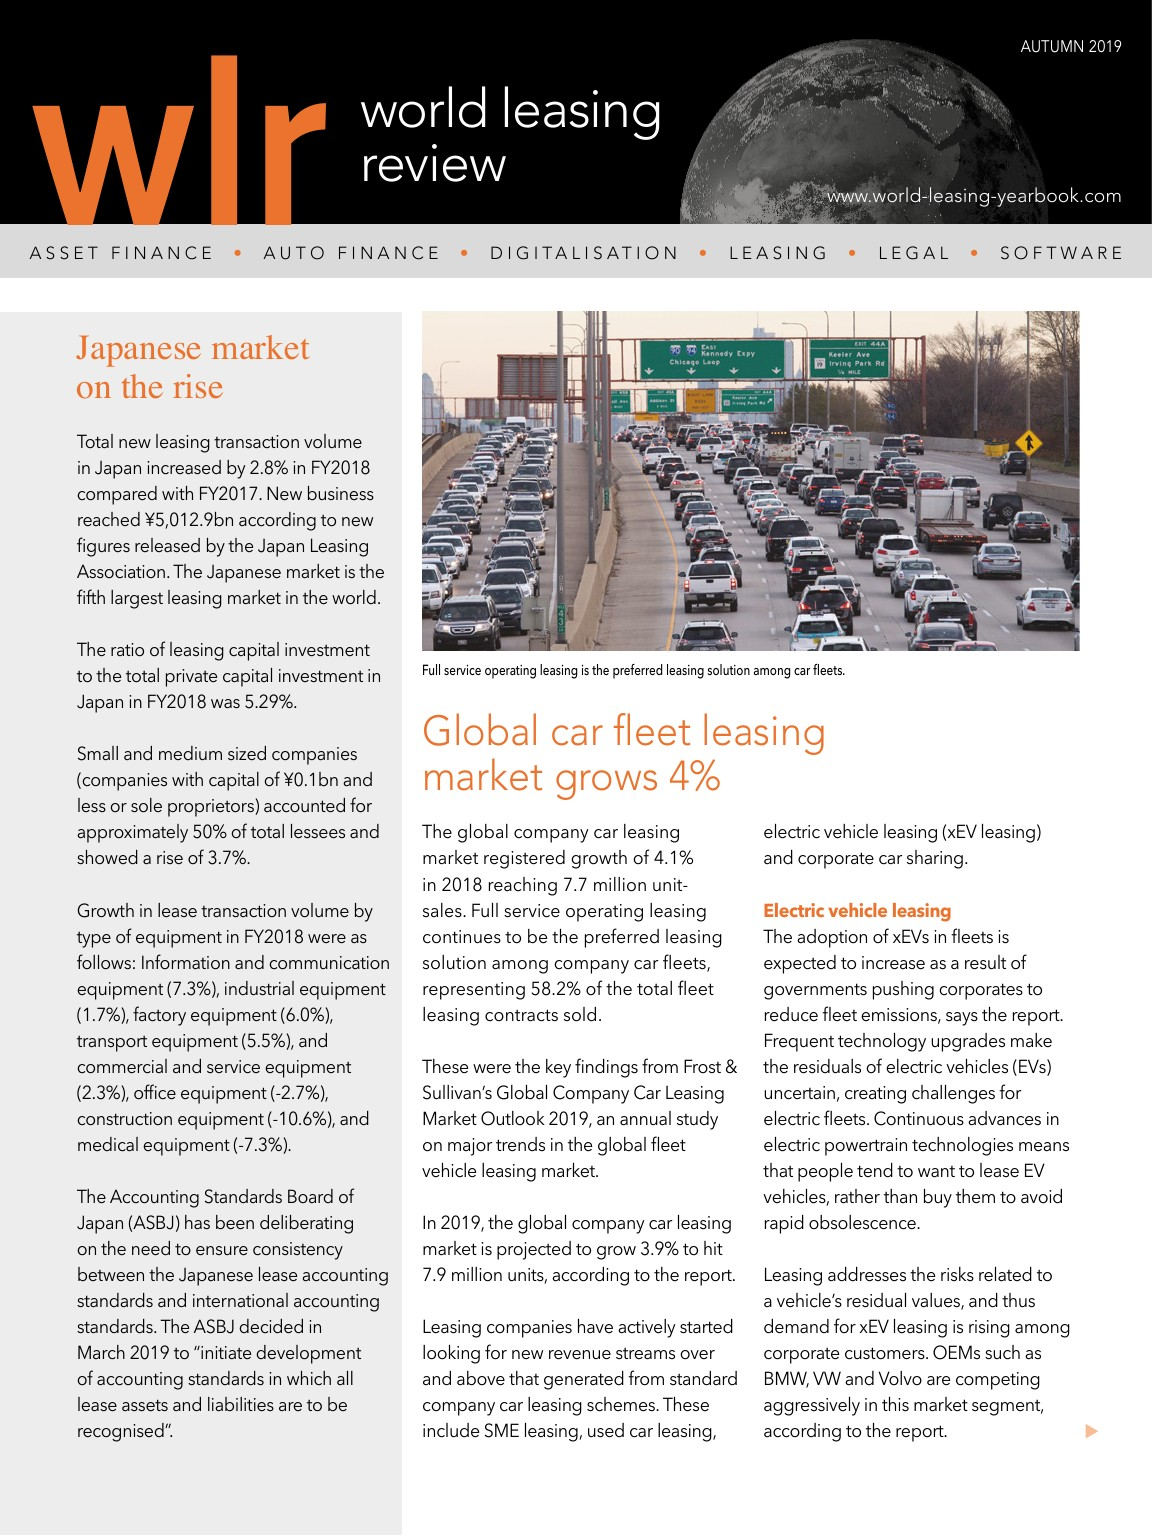 World Leasing Review Autumn 2019 Edition